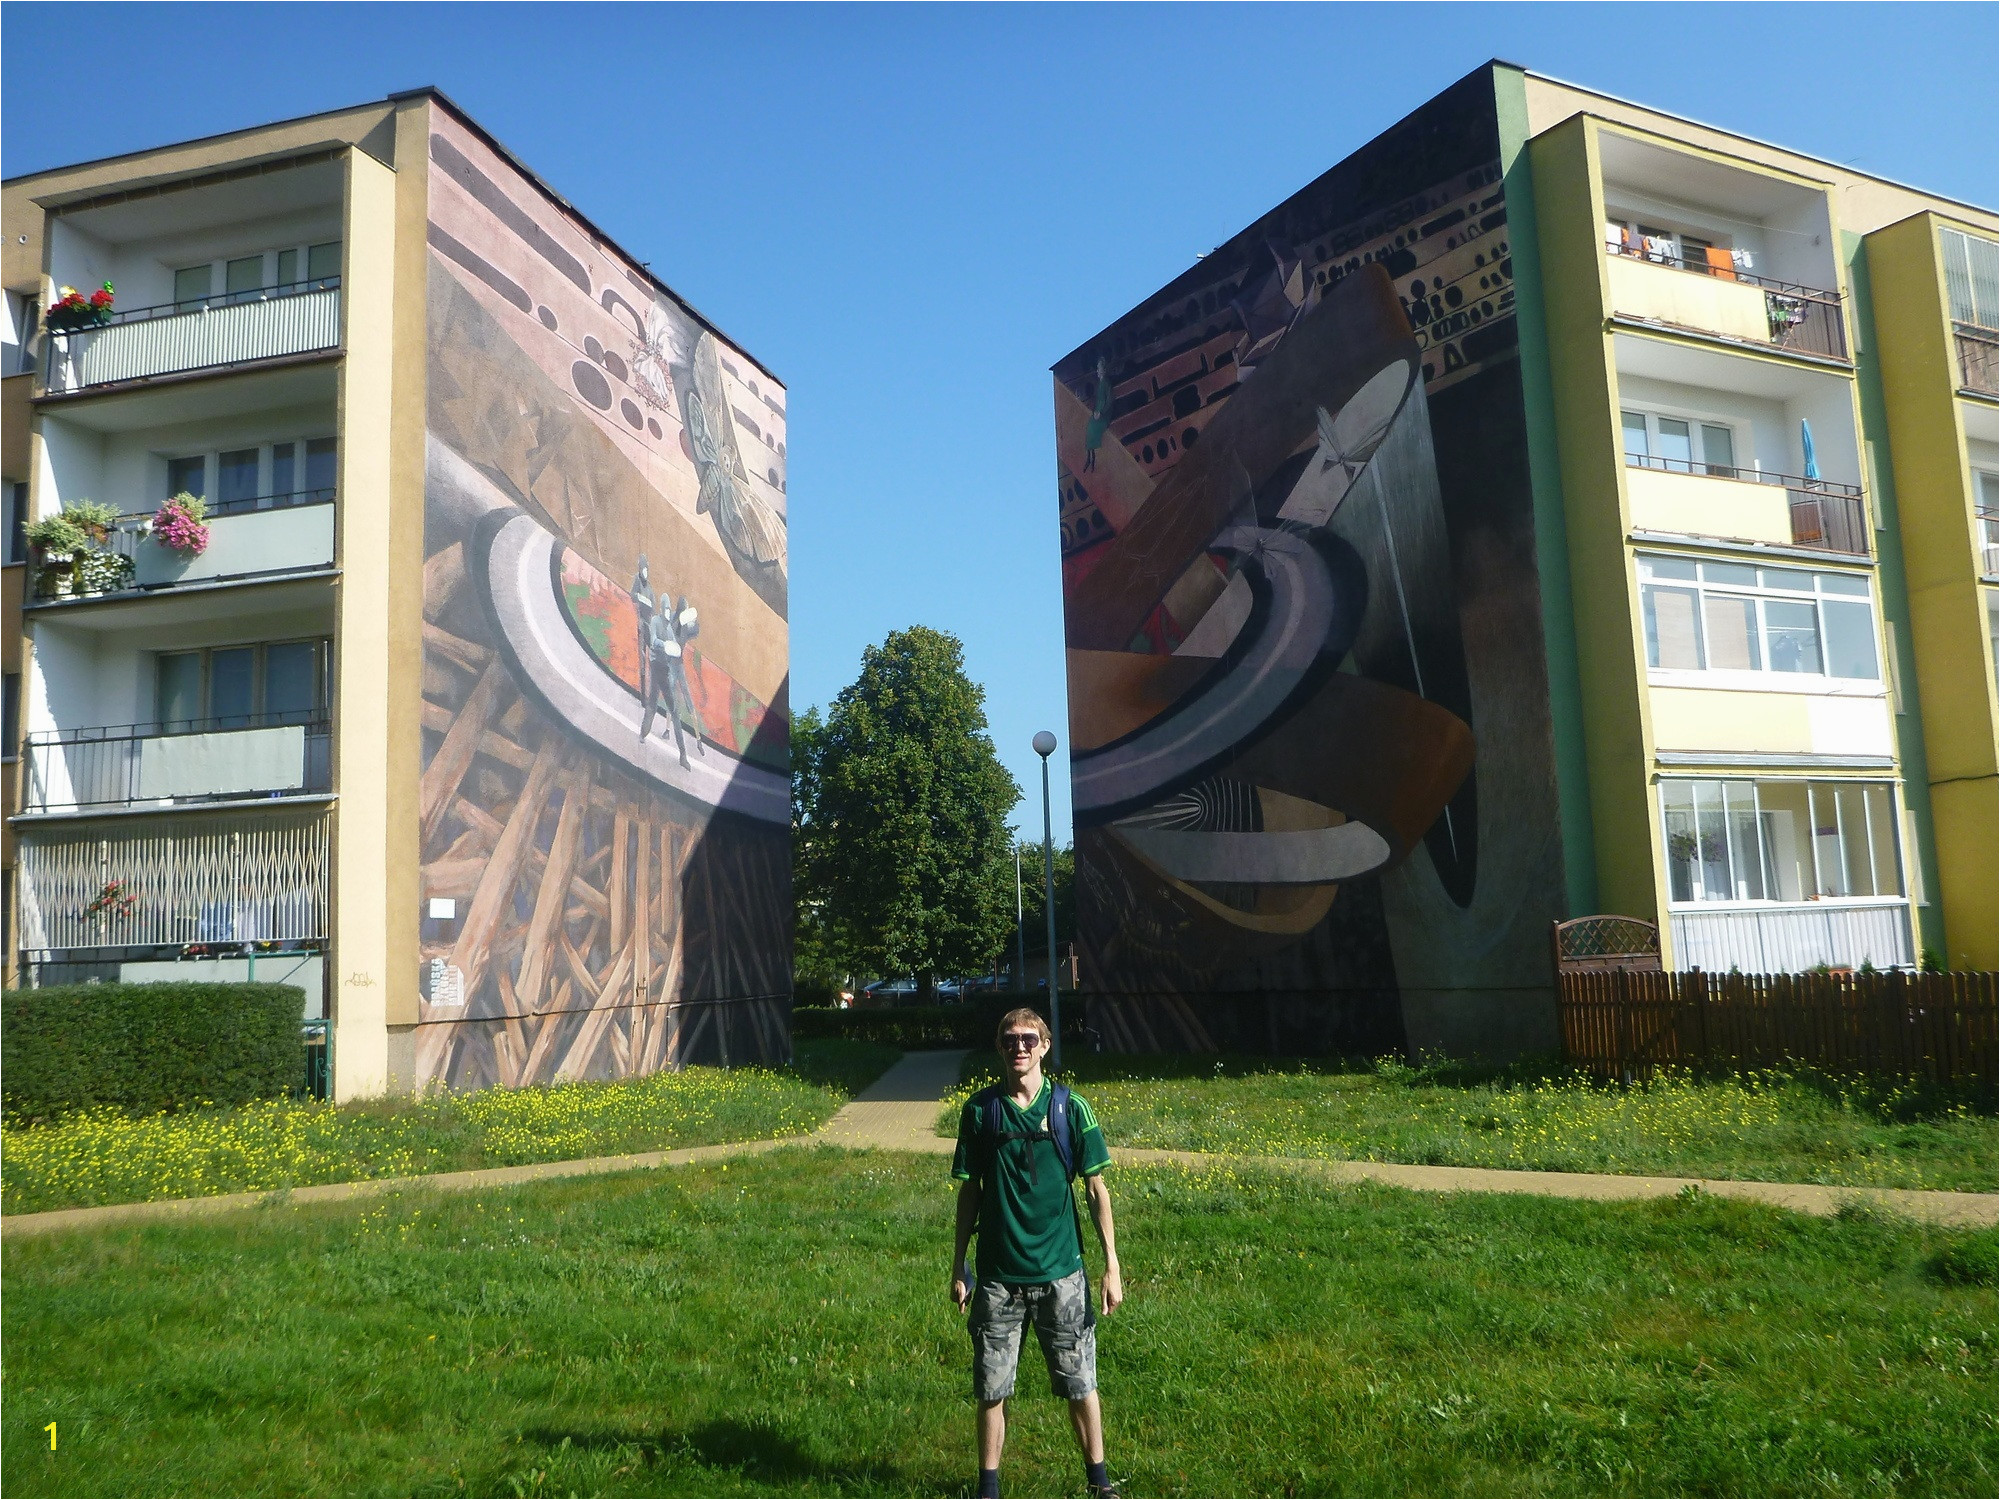 Touring the Artistic Wall Murals in the District of Zaspa Gdańsk Poland